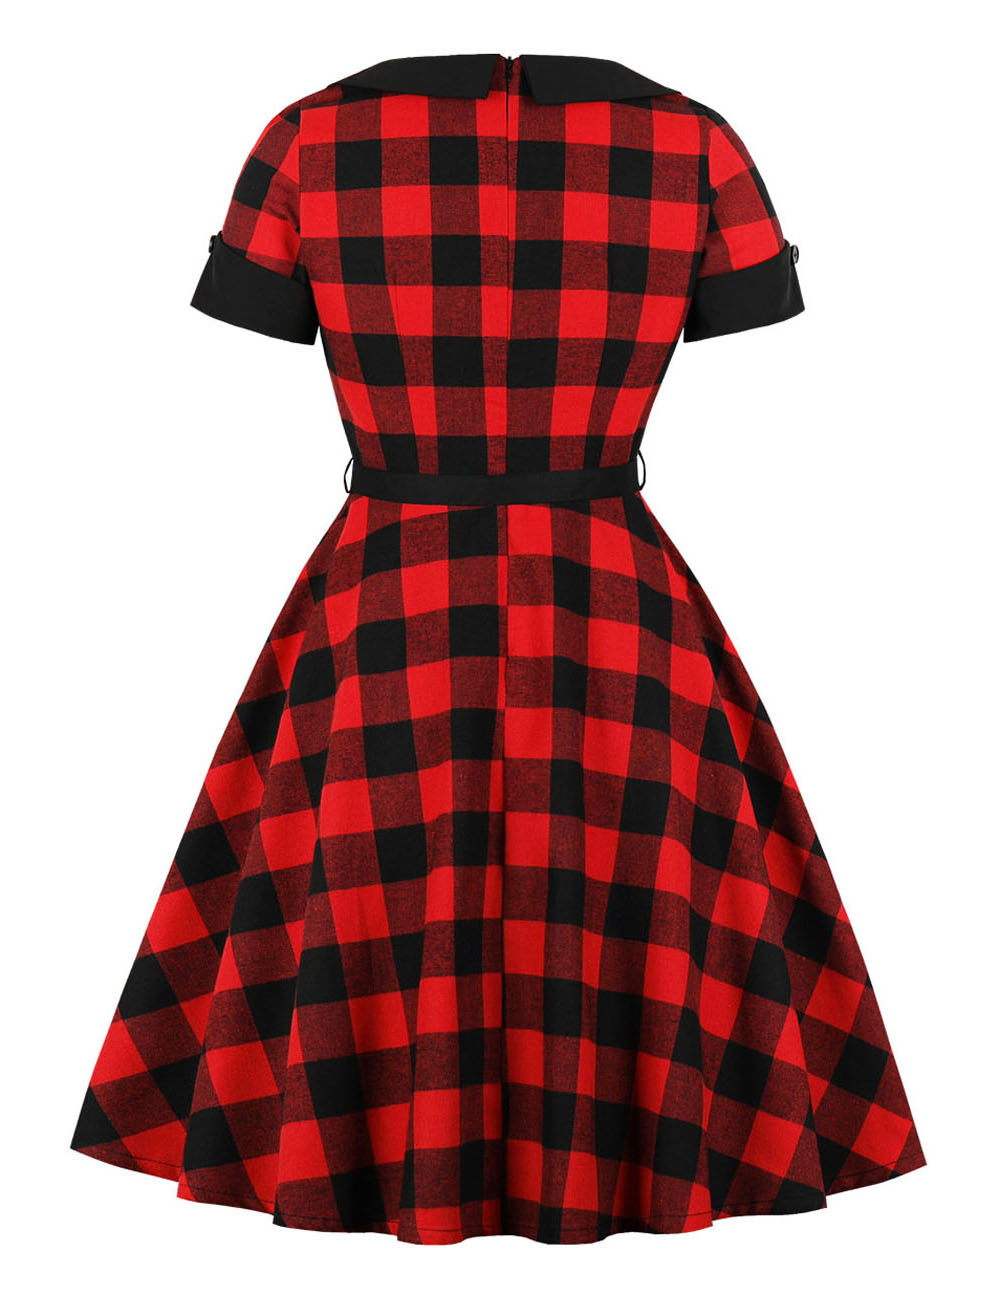 //cdn.affectcloud.com/feelingirldress/upload/goods/2018-11-05/I180270-RD1/I180270-RD1-2.jpg